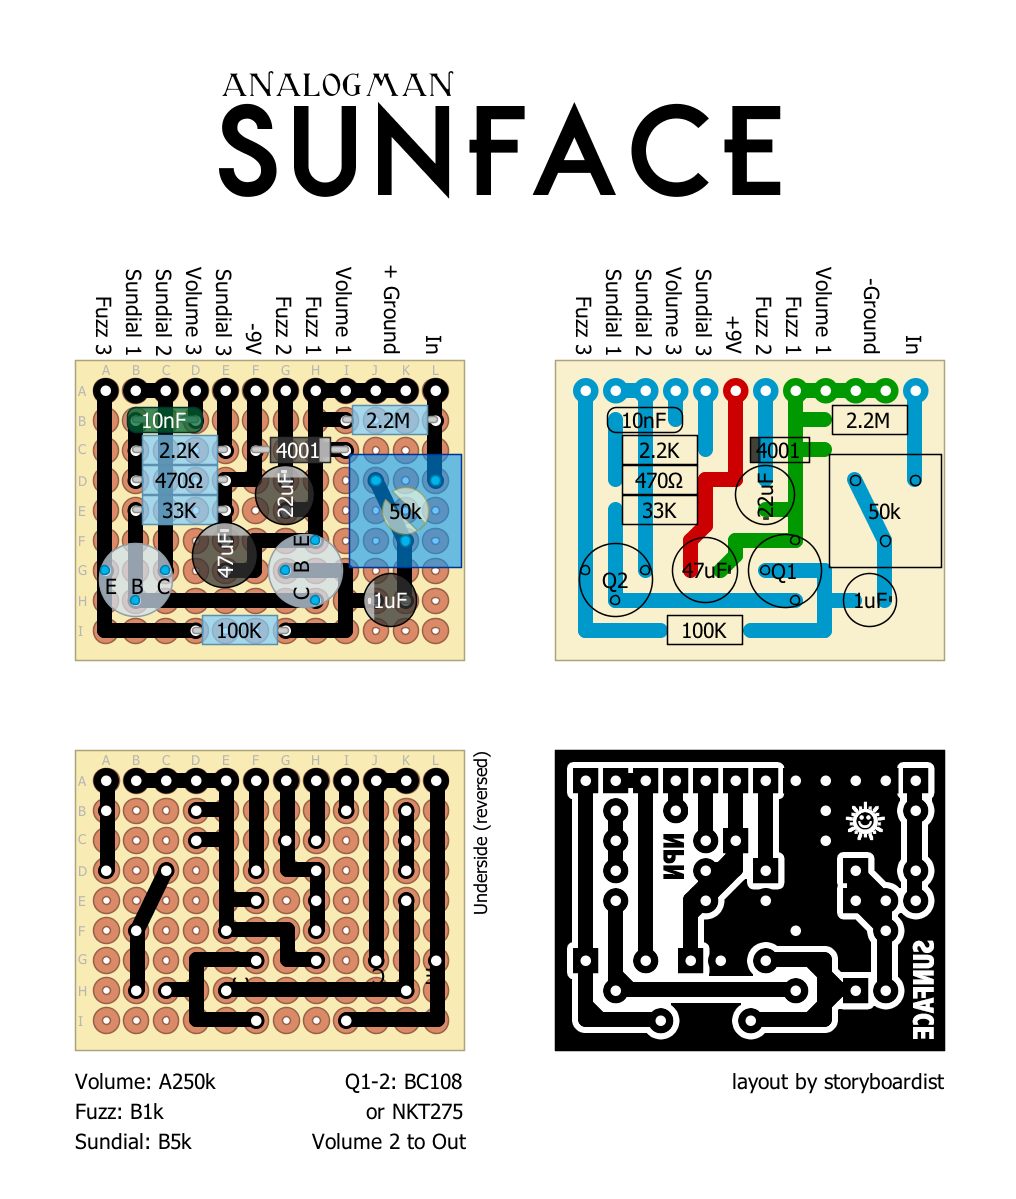 perf and pcb effects layouts  analogman sunface